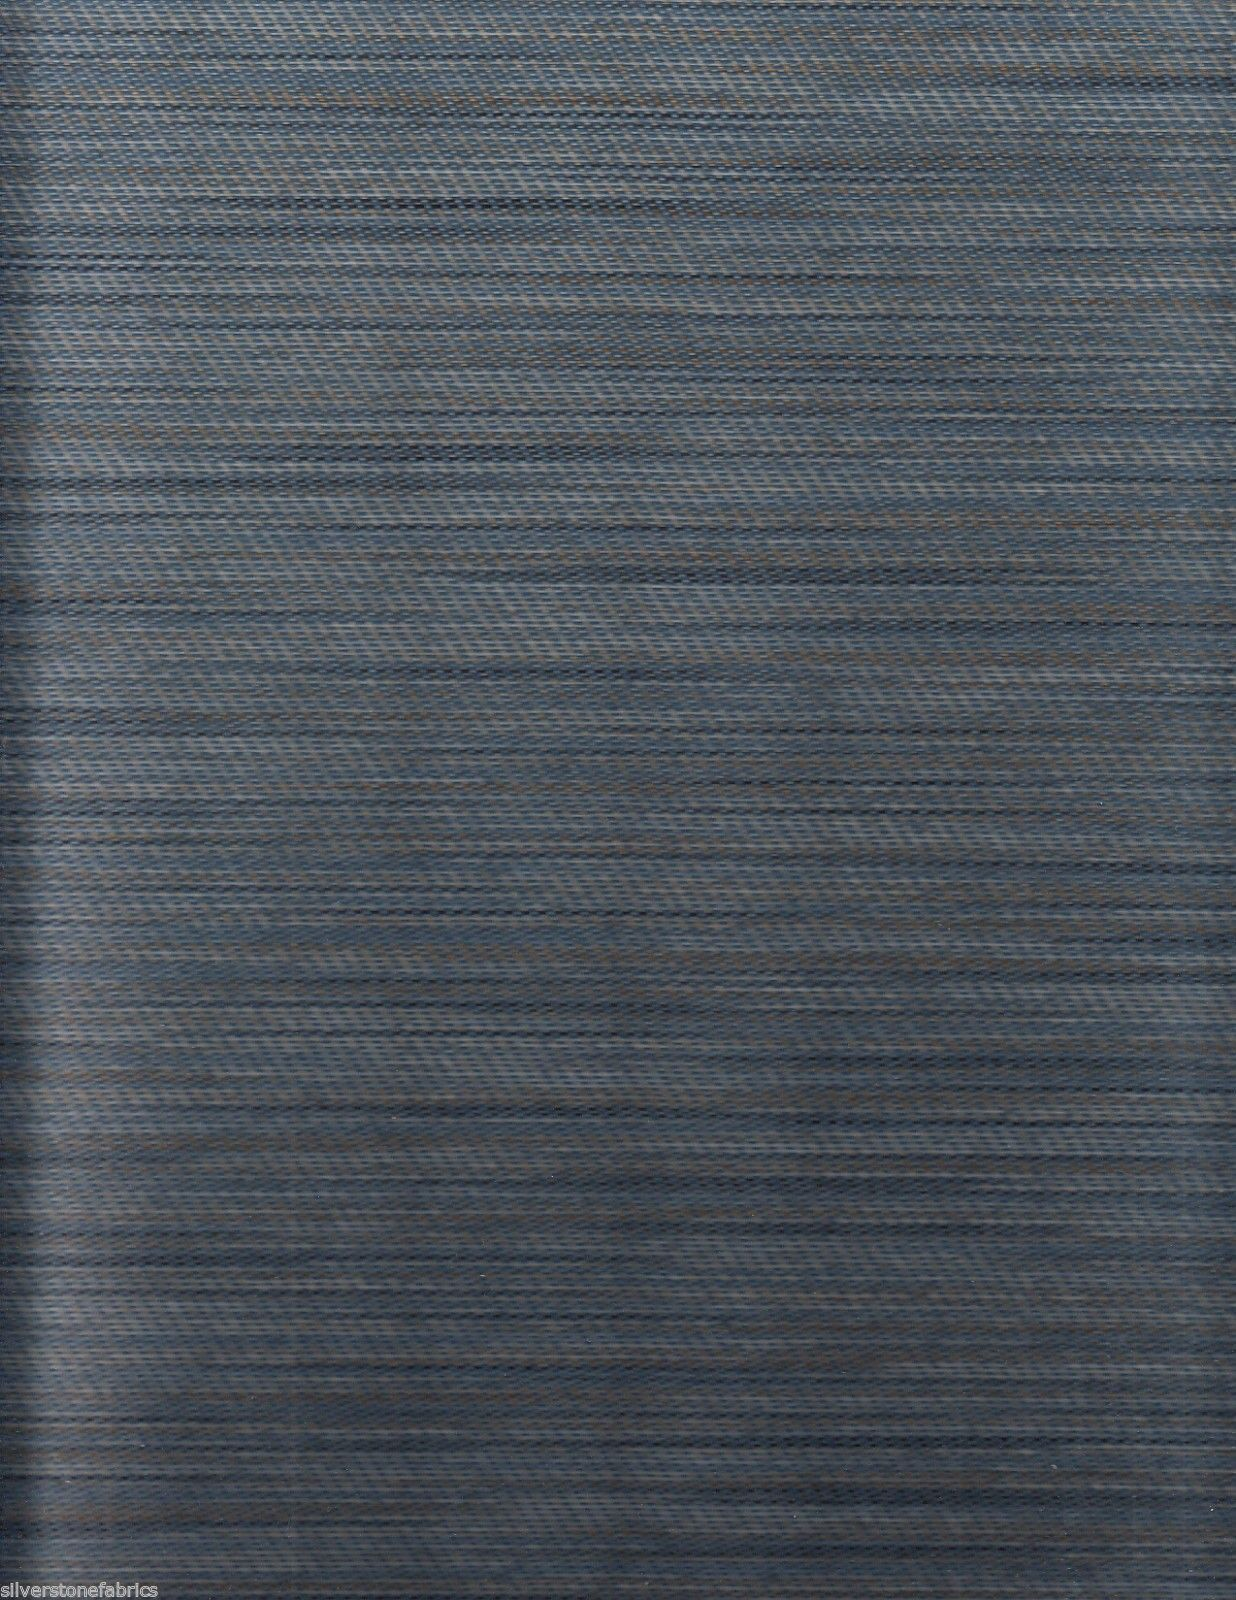 45.75 yds Maharam Upholstery Fabric Vary Striae MCM Astral Blue 465933-002 GM7